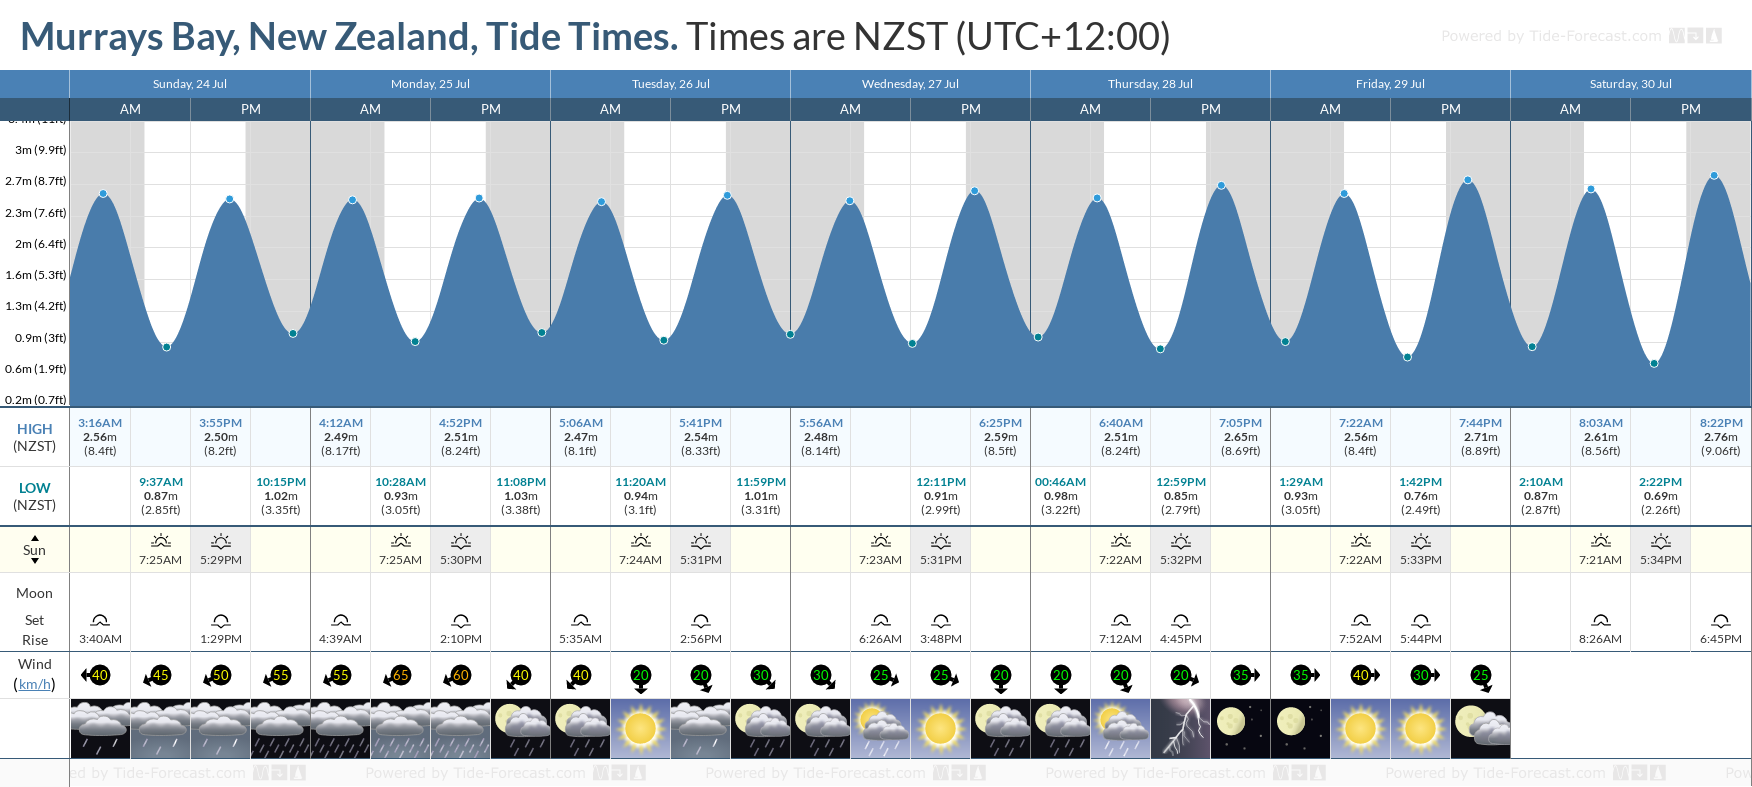 Murrays Bay, New Zealand Tide Chart including high and low tide tide times for the next 7 days